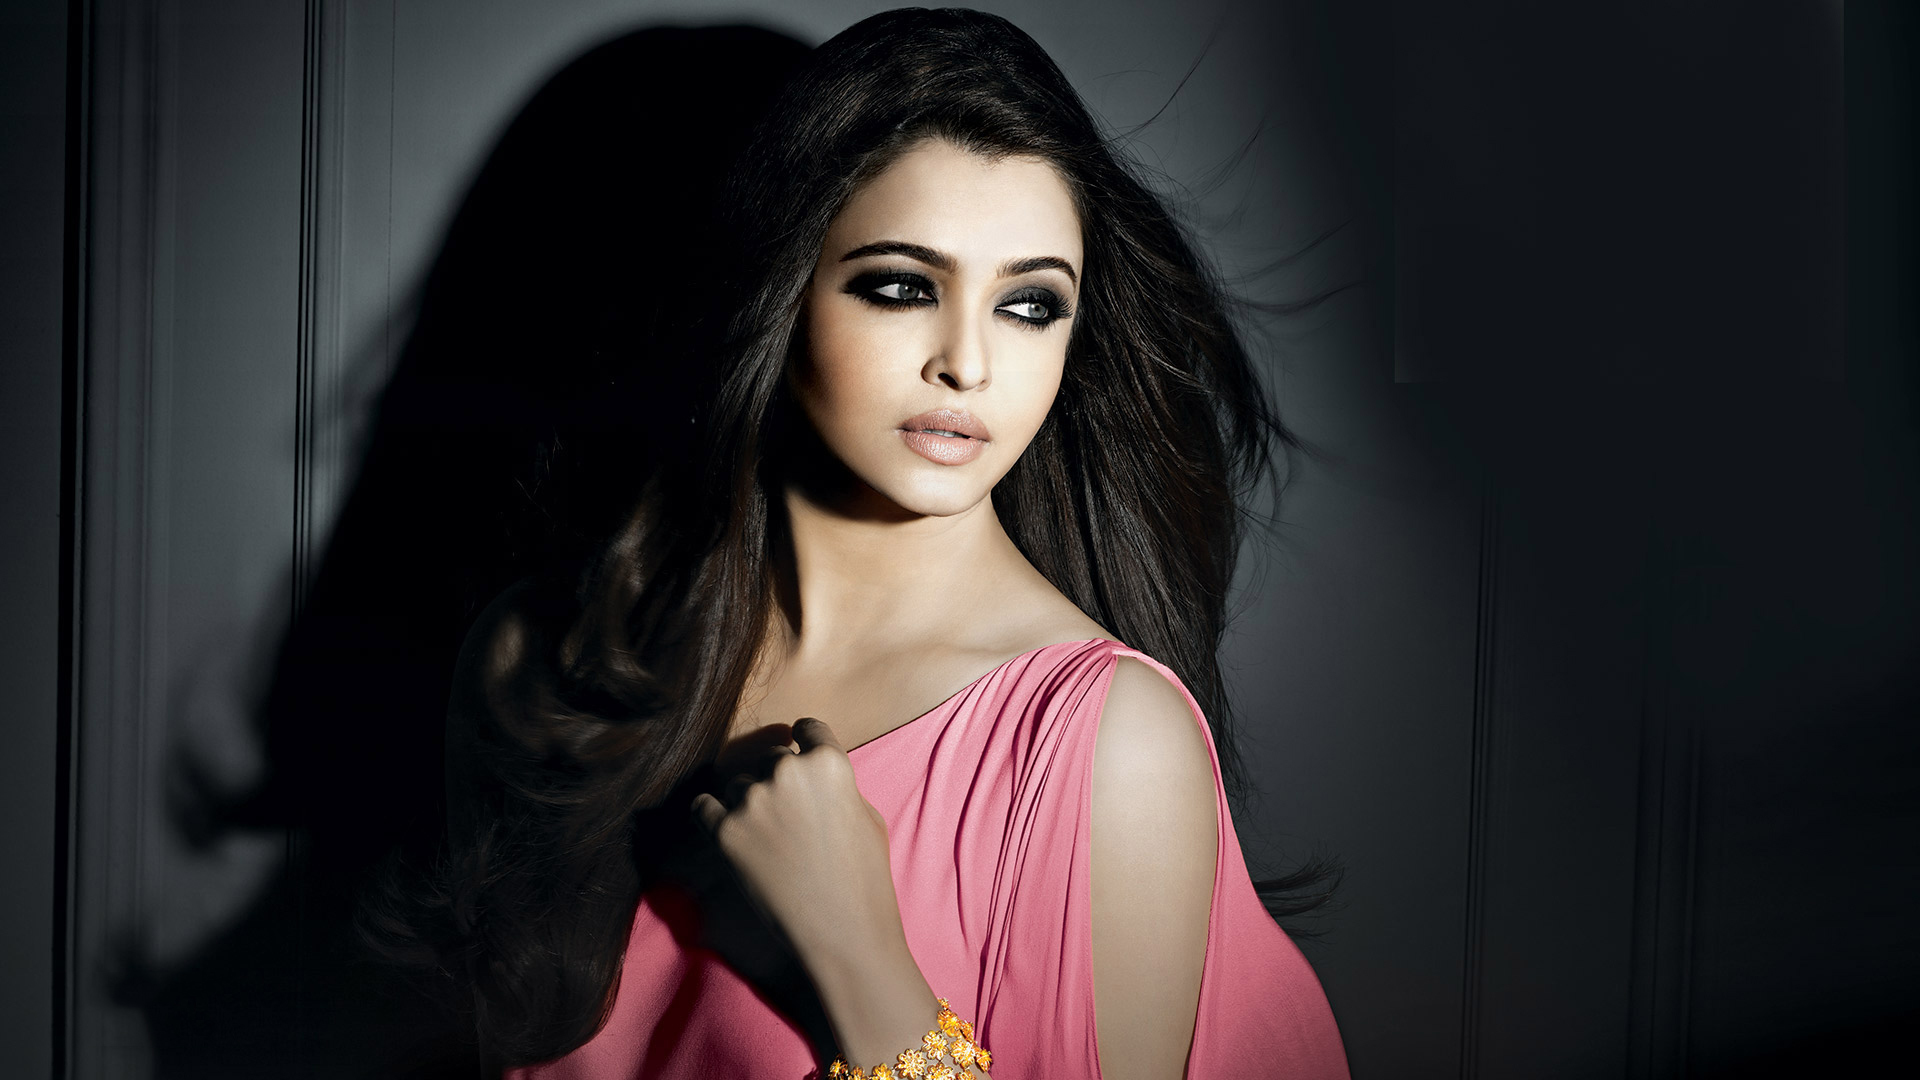 Aishwarya rai hd images 100 Aishwarya Rai Hot And Beautiful Photos And Wallpaper